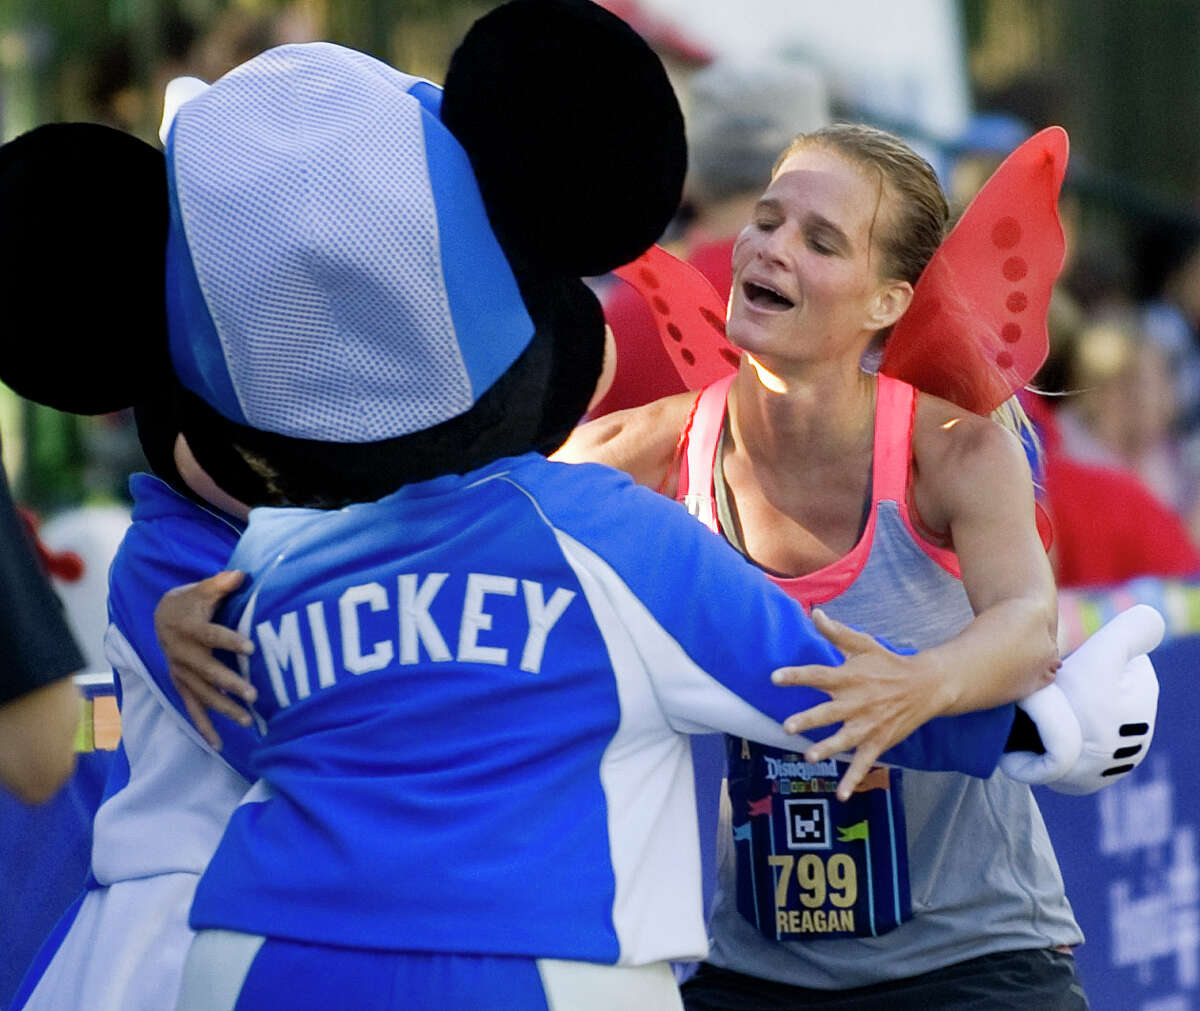 Reagan Anders finishes the 2012 Disney Half Marathon Sept. 2, 2012. The 13.1-mile race started at Disneyland Park, winded into Disney California Adventure, and through the streets of Anaheim, before finishing at the Disneyland Hotel.More than 17,000 runners competed.